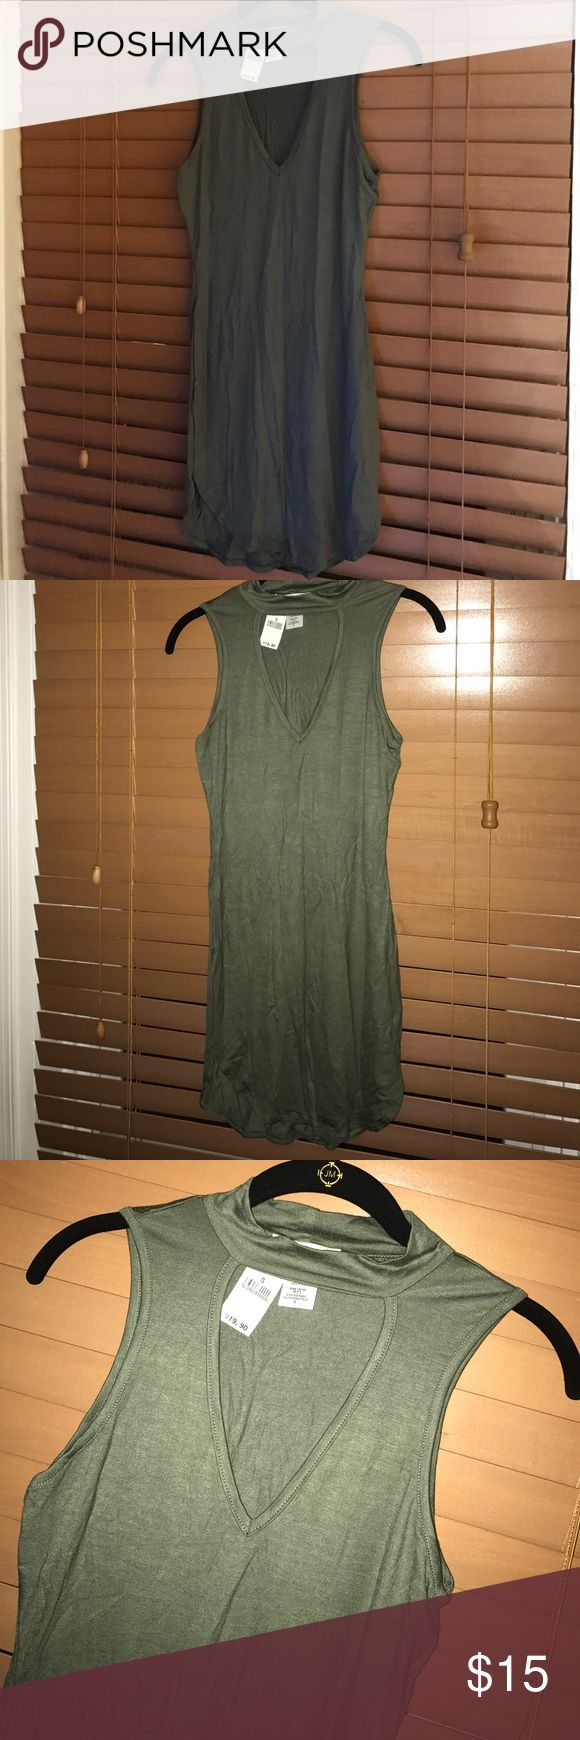 Olive Green Sleeveless Wet Seal Dress Olive Green  Sleeveless Mock Turtleneck  V shape cut out right above chest  Curved hem 95% Rayon  5% Spandex Wet Seal Dresses Mini